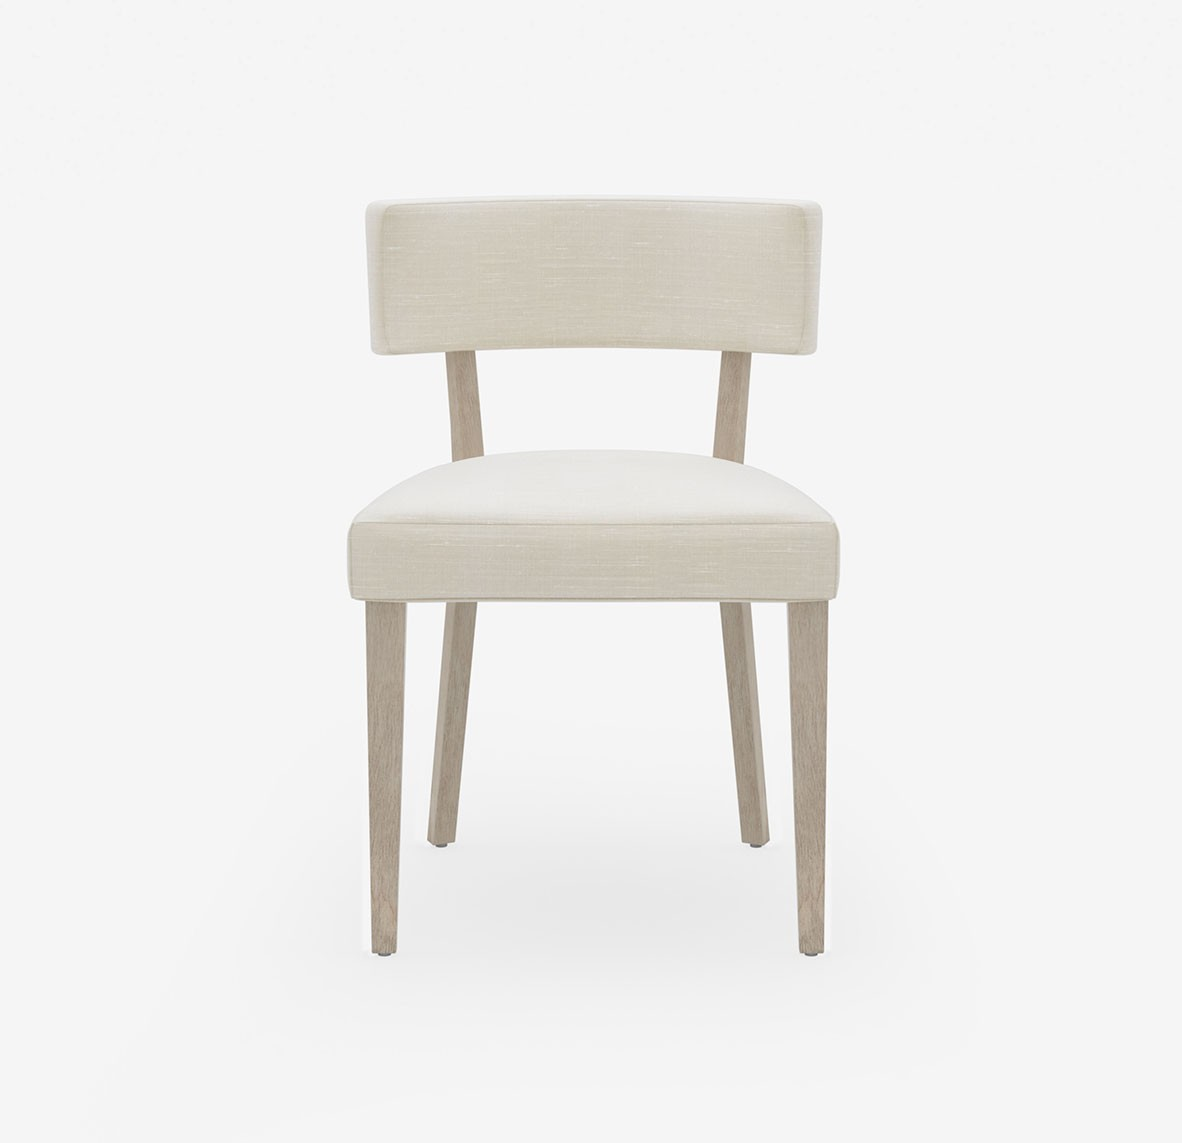 Style Seat Designer Dining Chair With Luxury Upholstered Seat and Back - Nordic Linen - Parchment